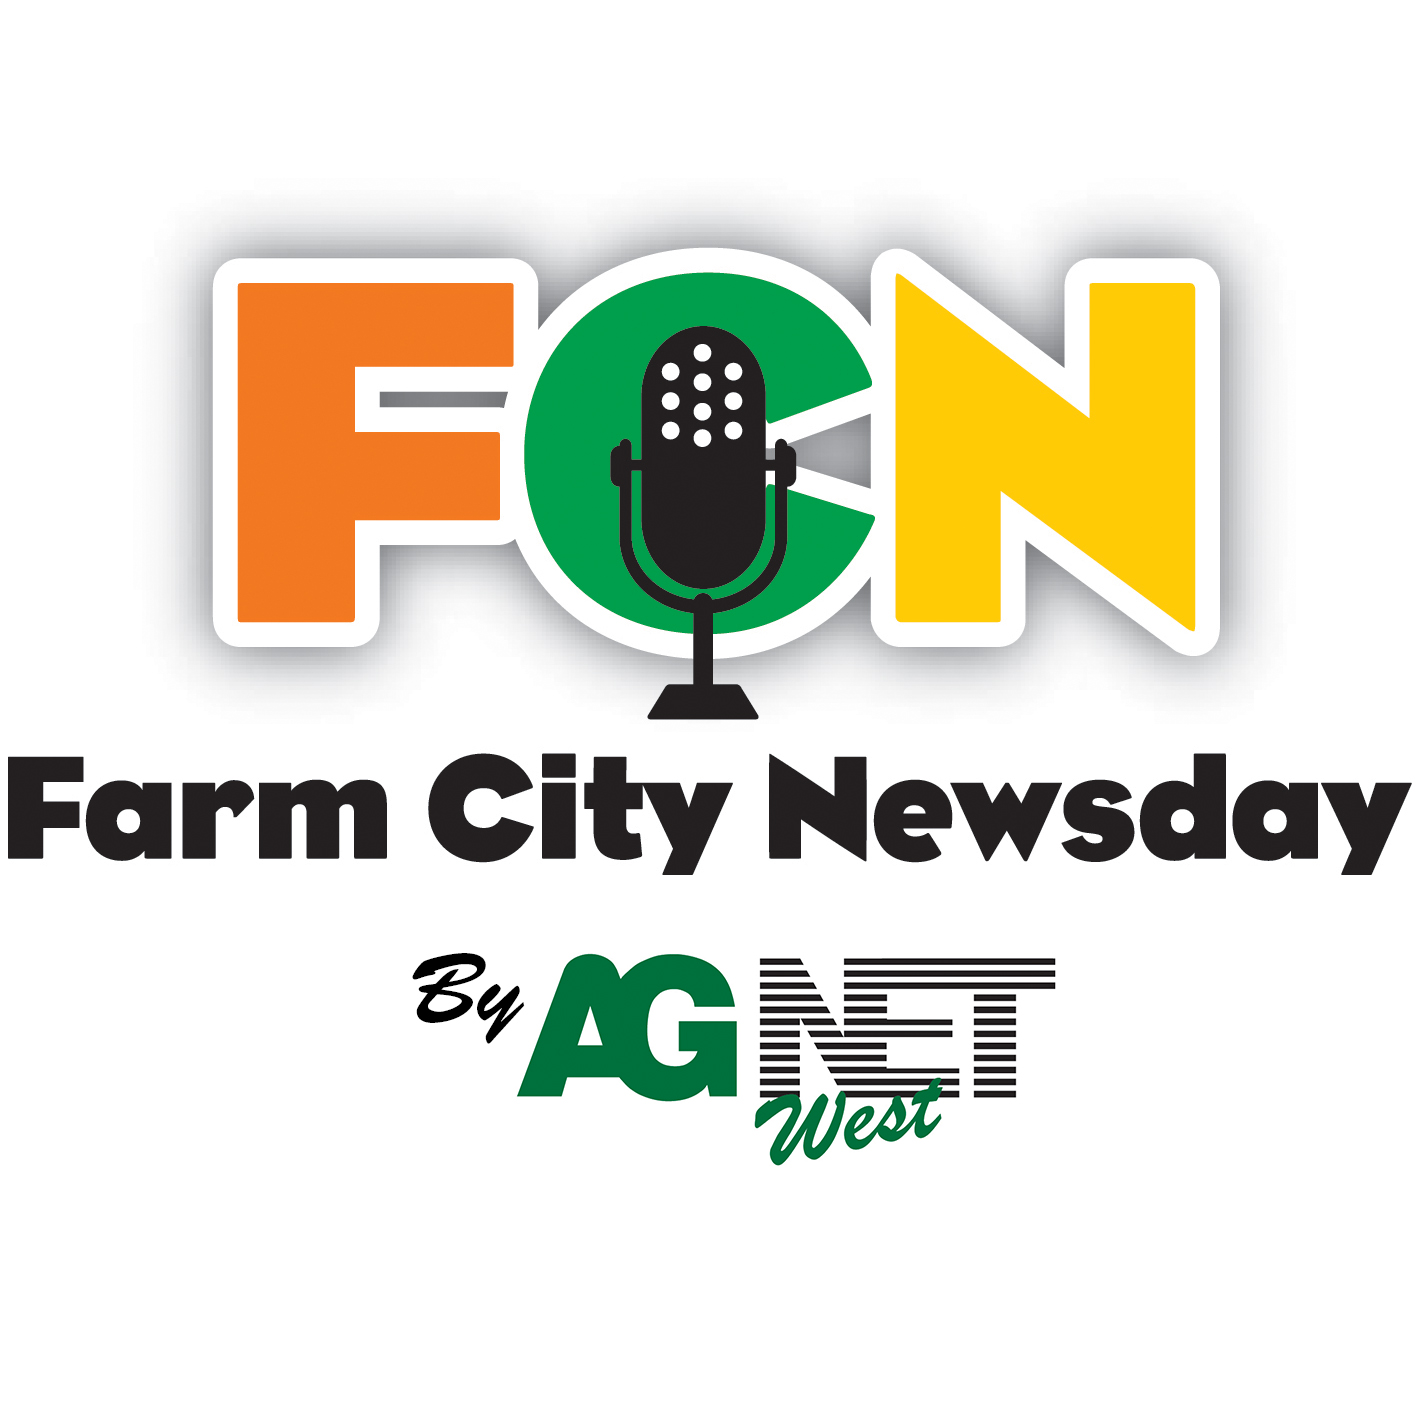 Farm City Newsday Friday, 11-30-18